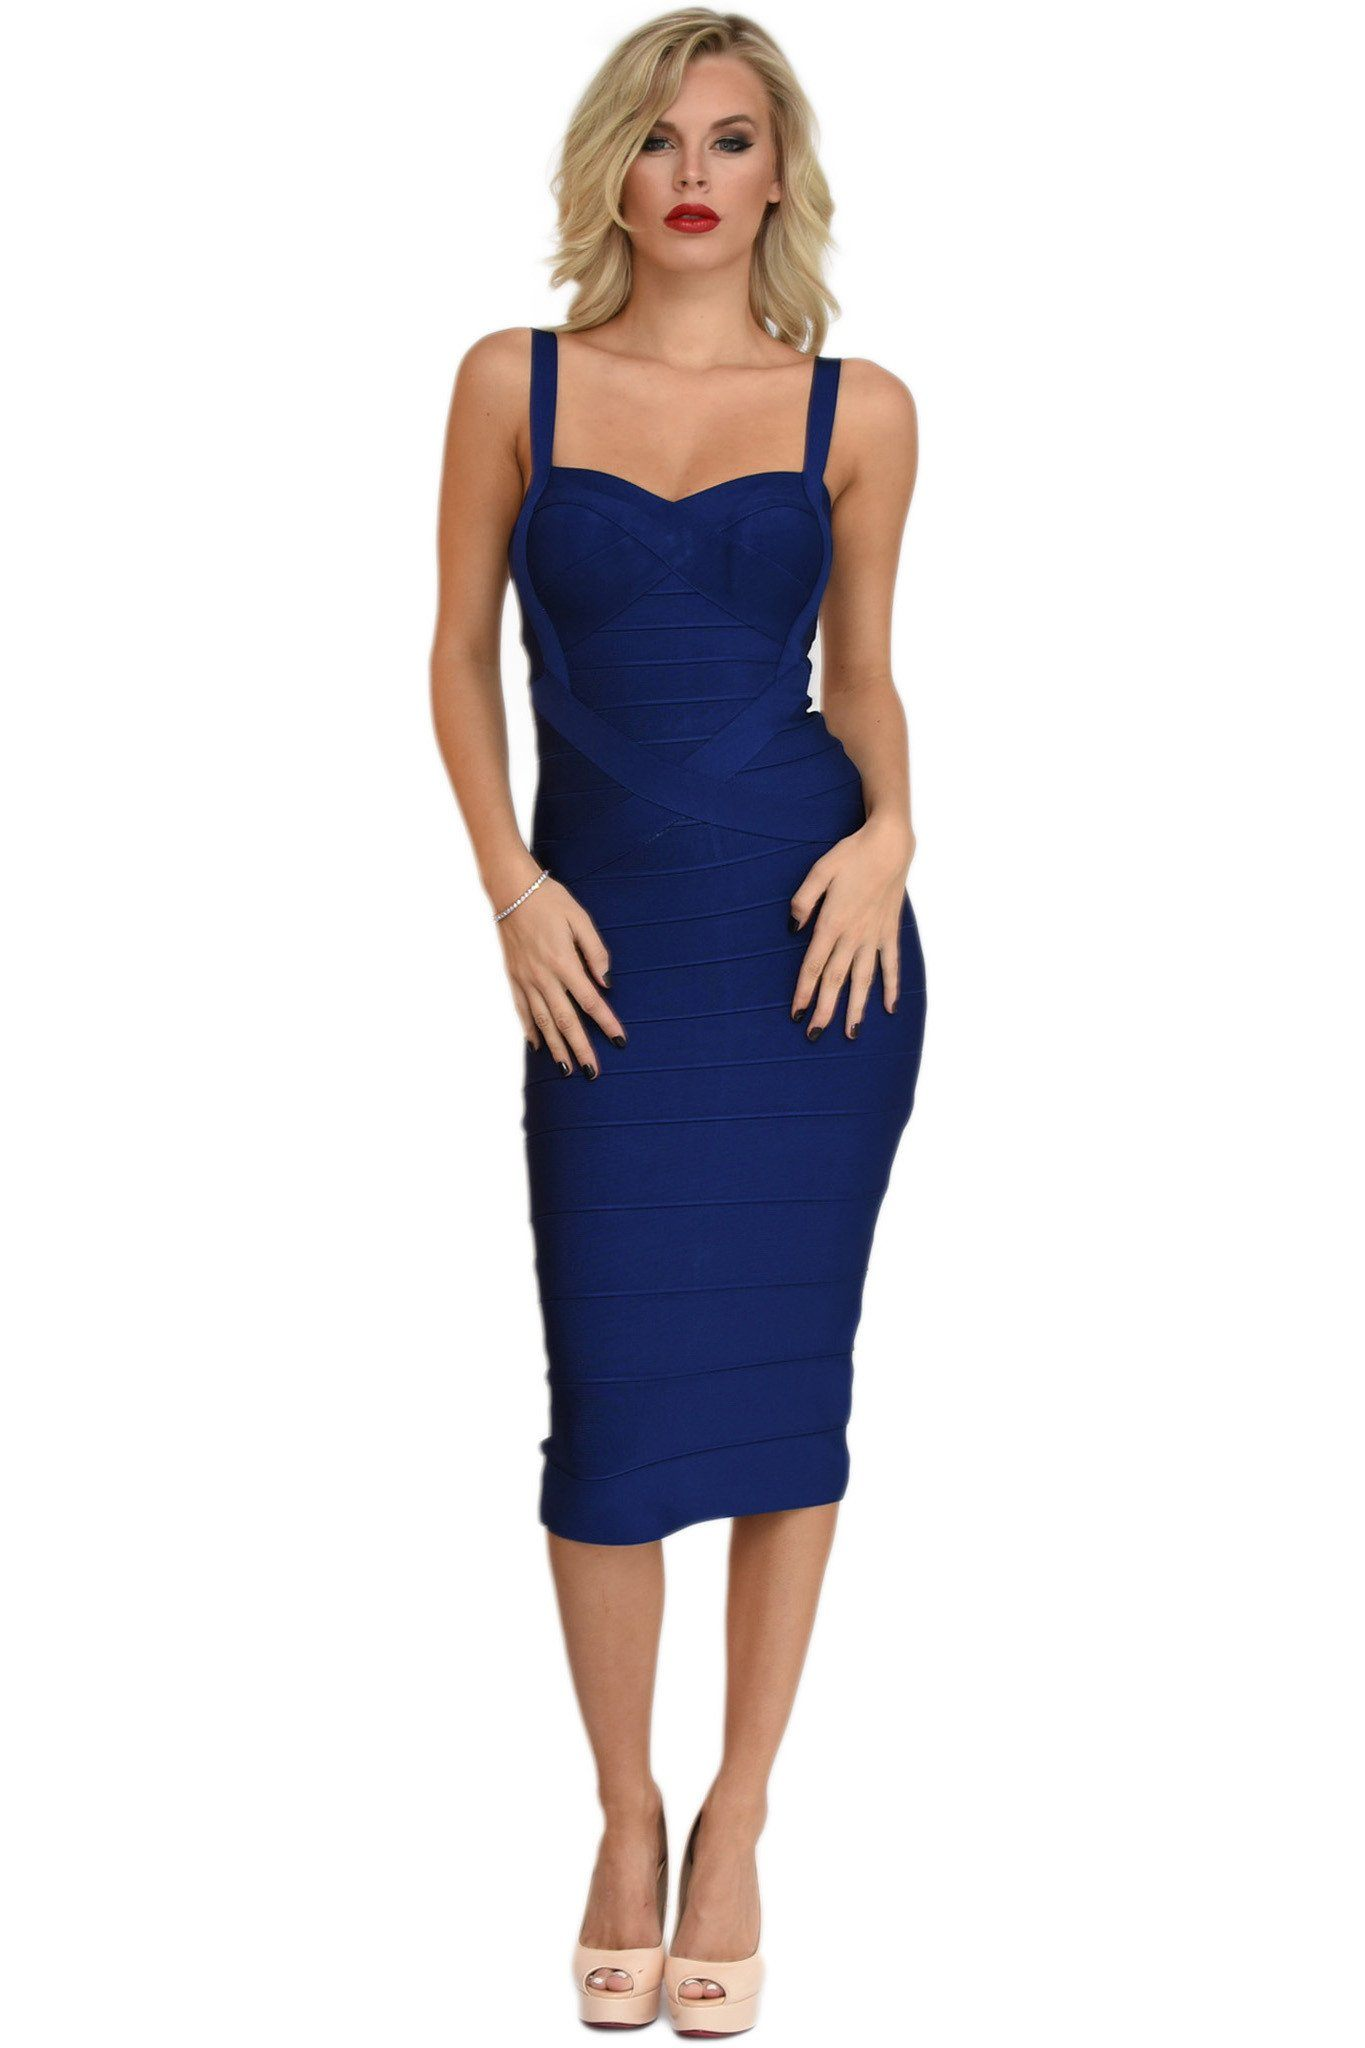 Front of navy blue midi bodycon bandage dress featuring sweetheart neckline and shoulder straps